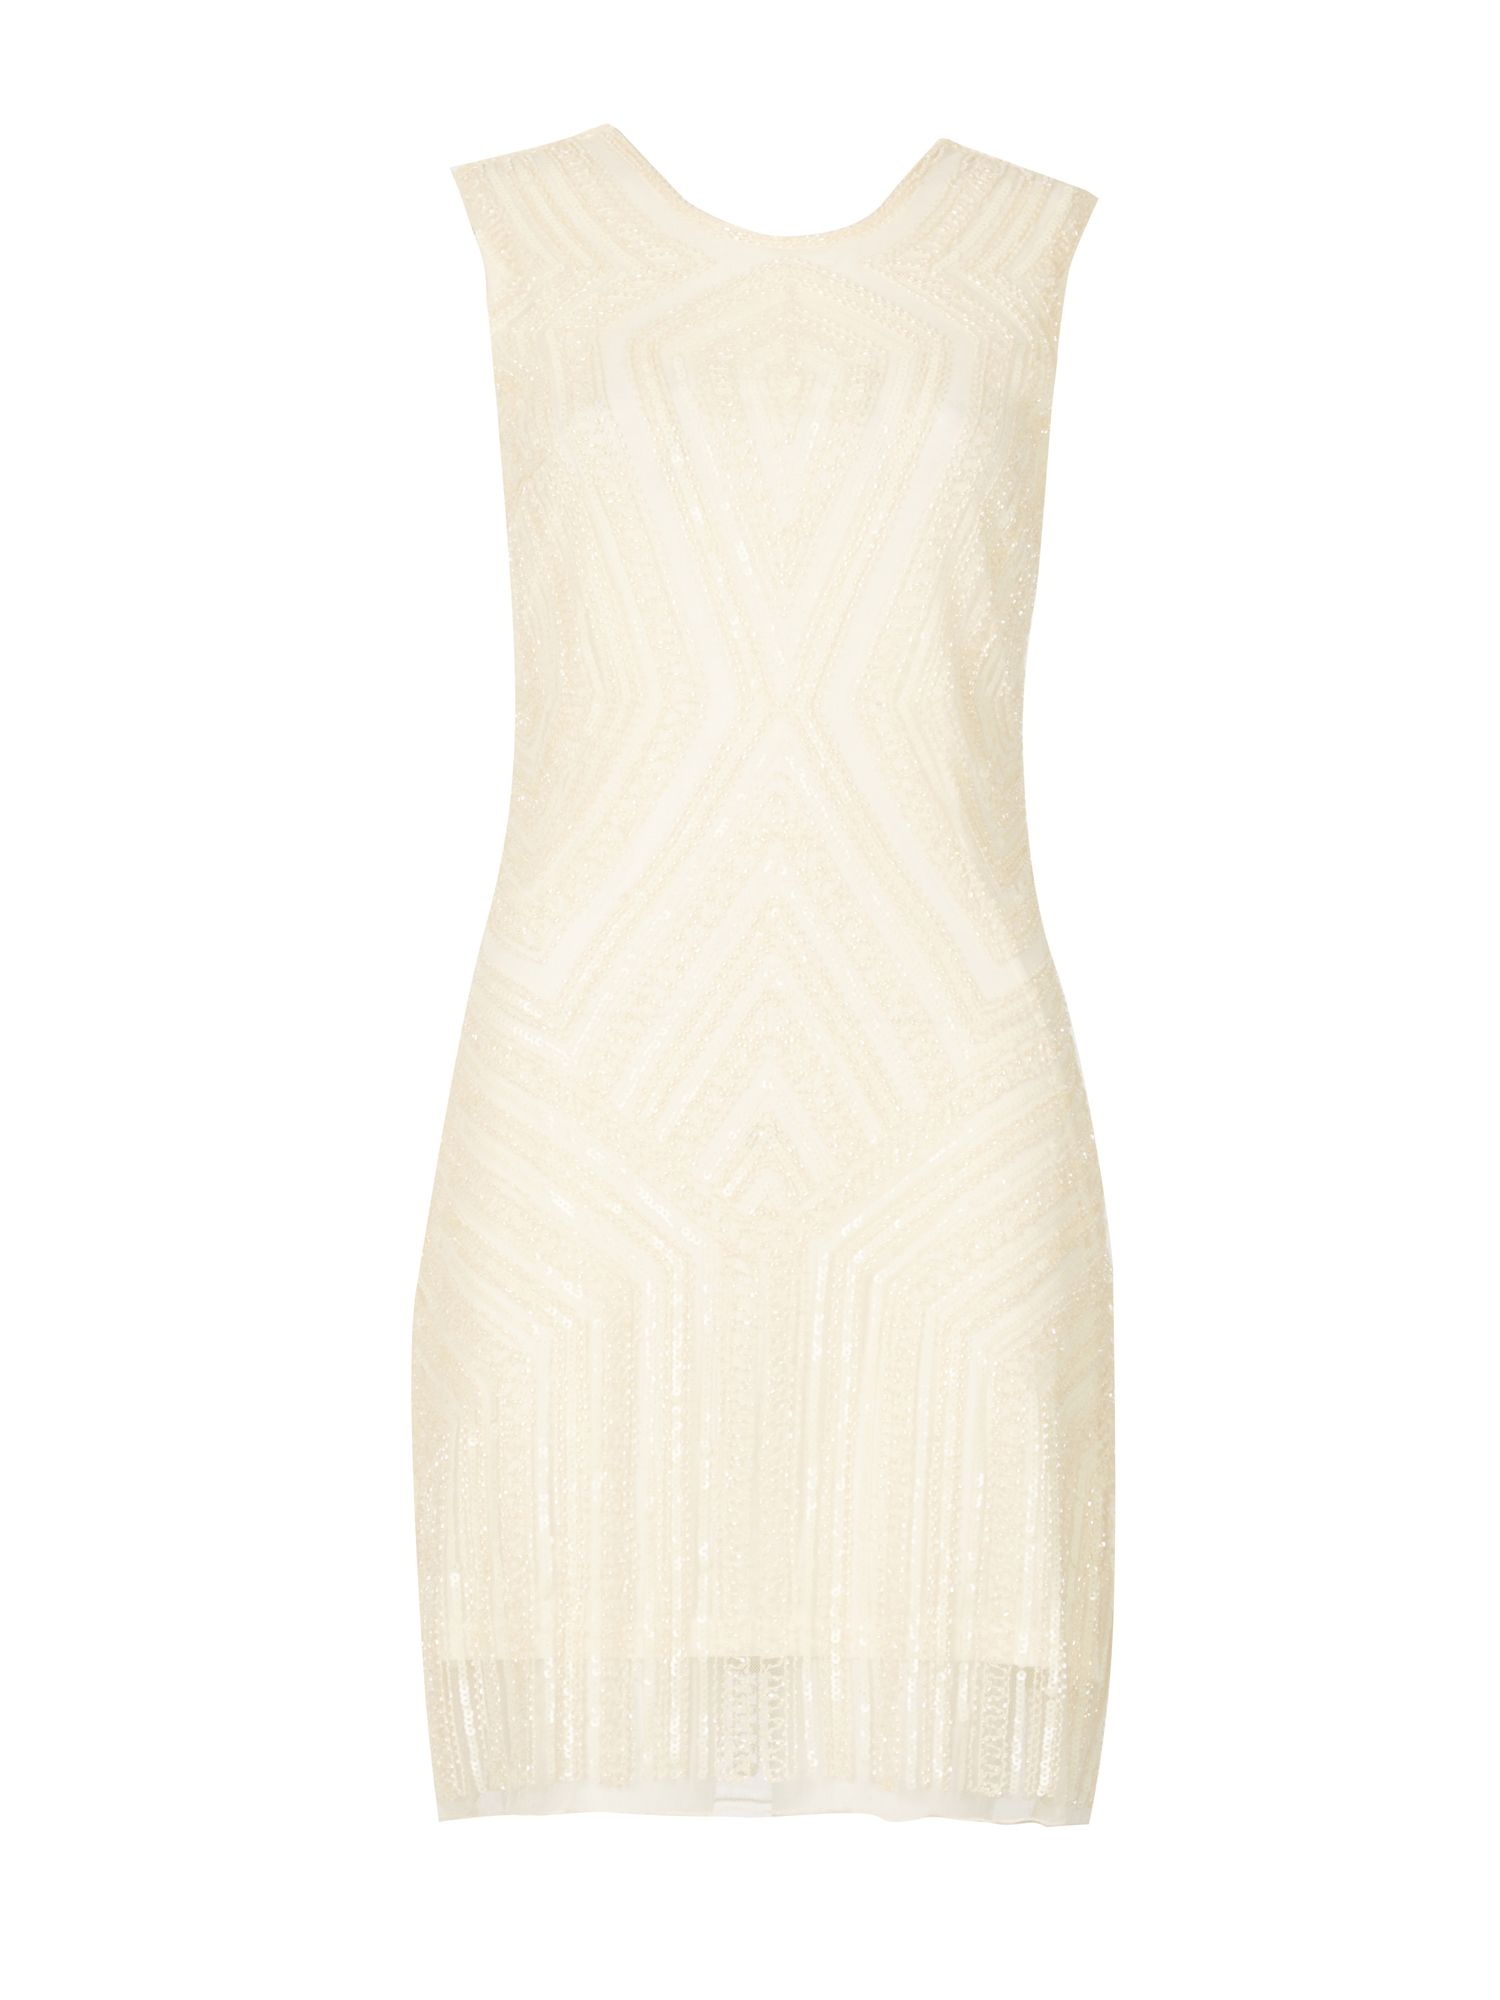 TENKI Beads Sequin Geo Embroidered Shift Dress, Brown